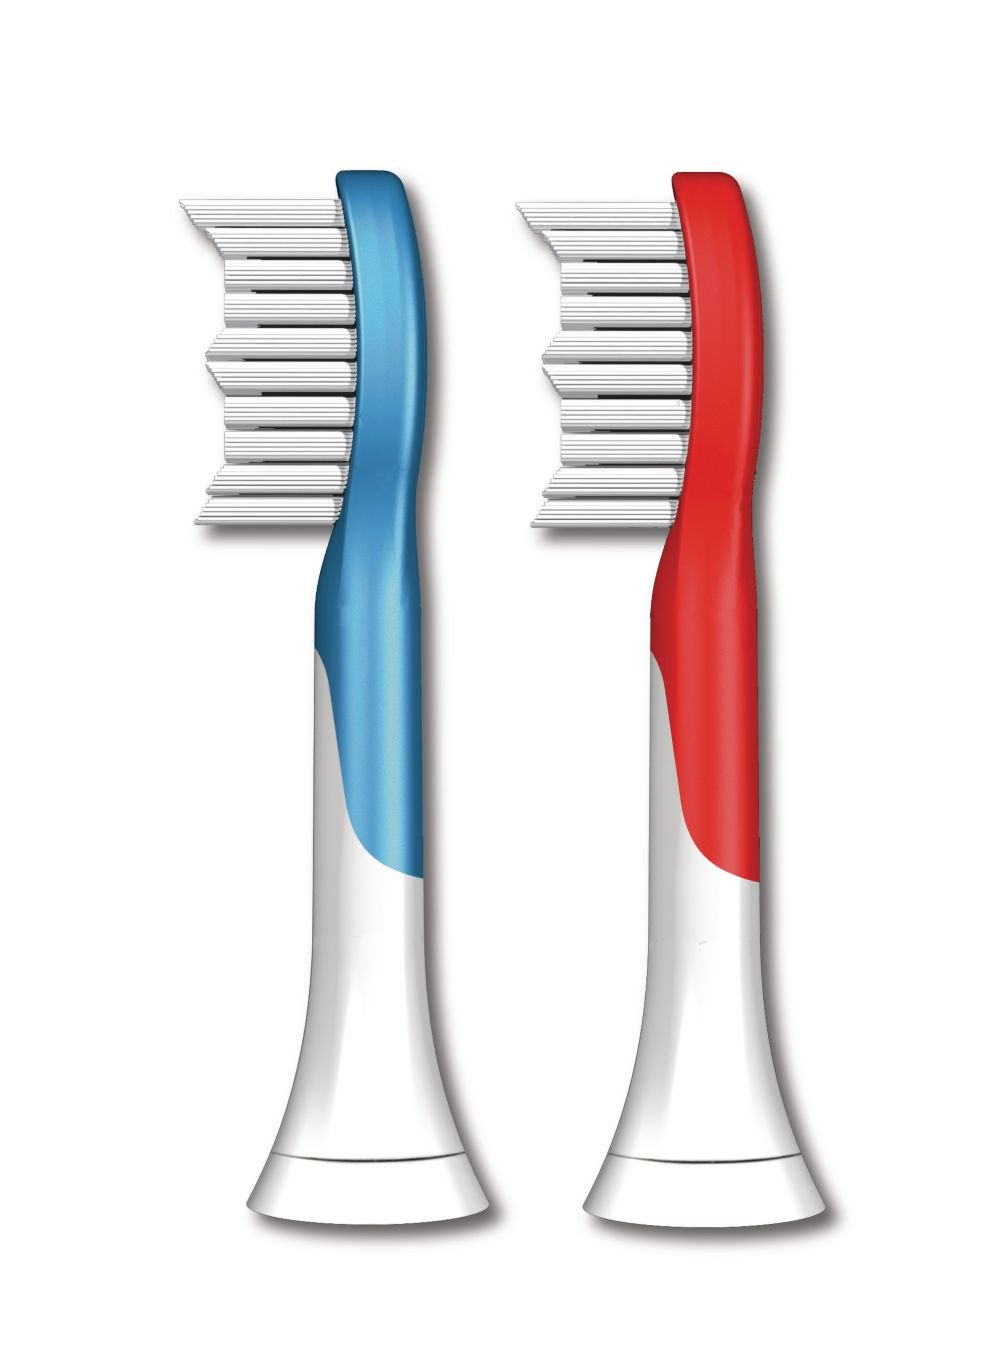 Philips Sonciare HX6042/16 Kids Standard (Ages 7+) Toothbrush Heads (2 Pack) HX6042/05